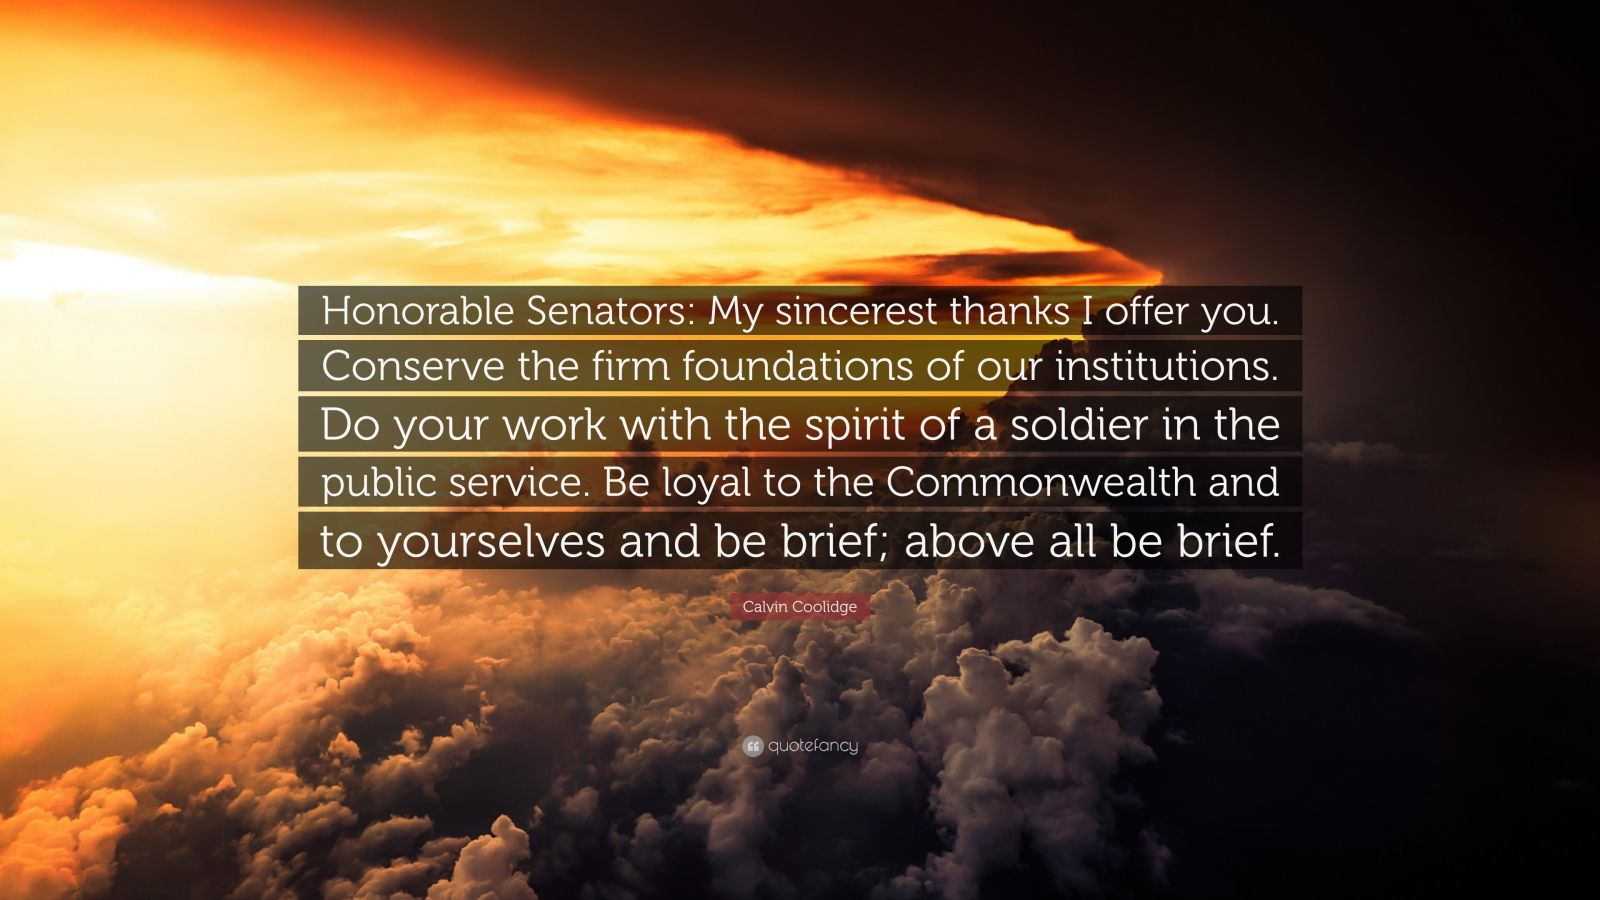 """Calvin Coolidge Quote: """"Honorable Senators: My sincerest thanks I offer you. Conserve the firm foundations of our institutions. Do your work with the spirit of a soldier in the public service. Be loyal to the Commonwealth and to yourselves and be brief; above all be brief."""""""